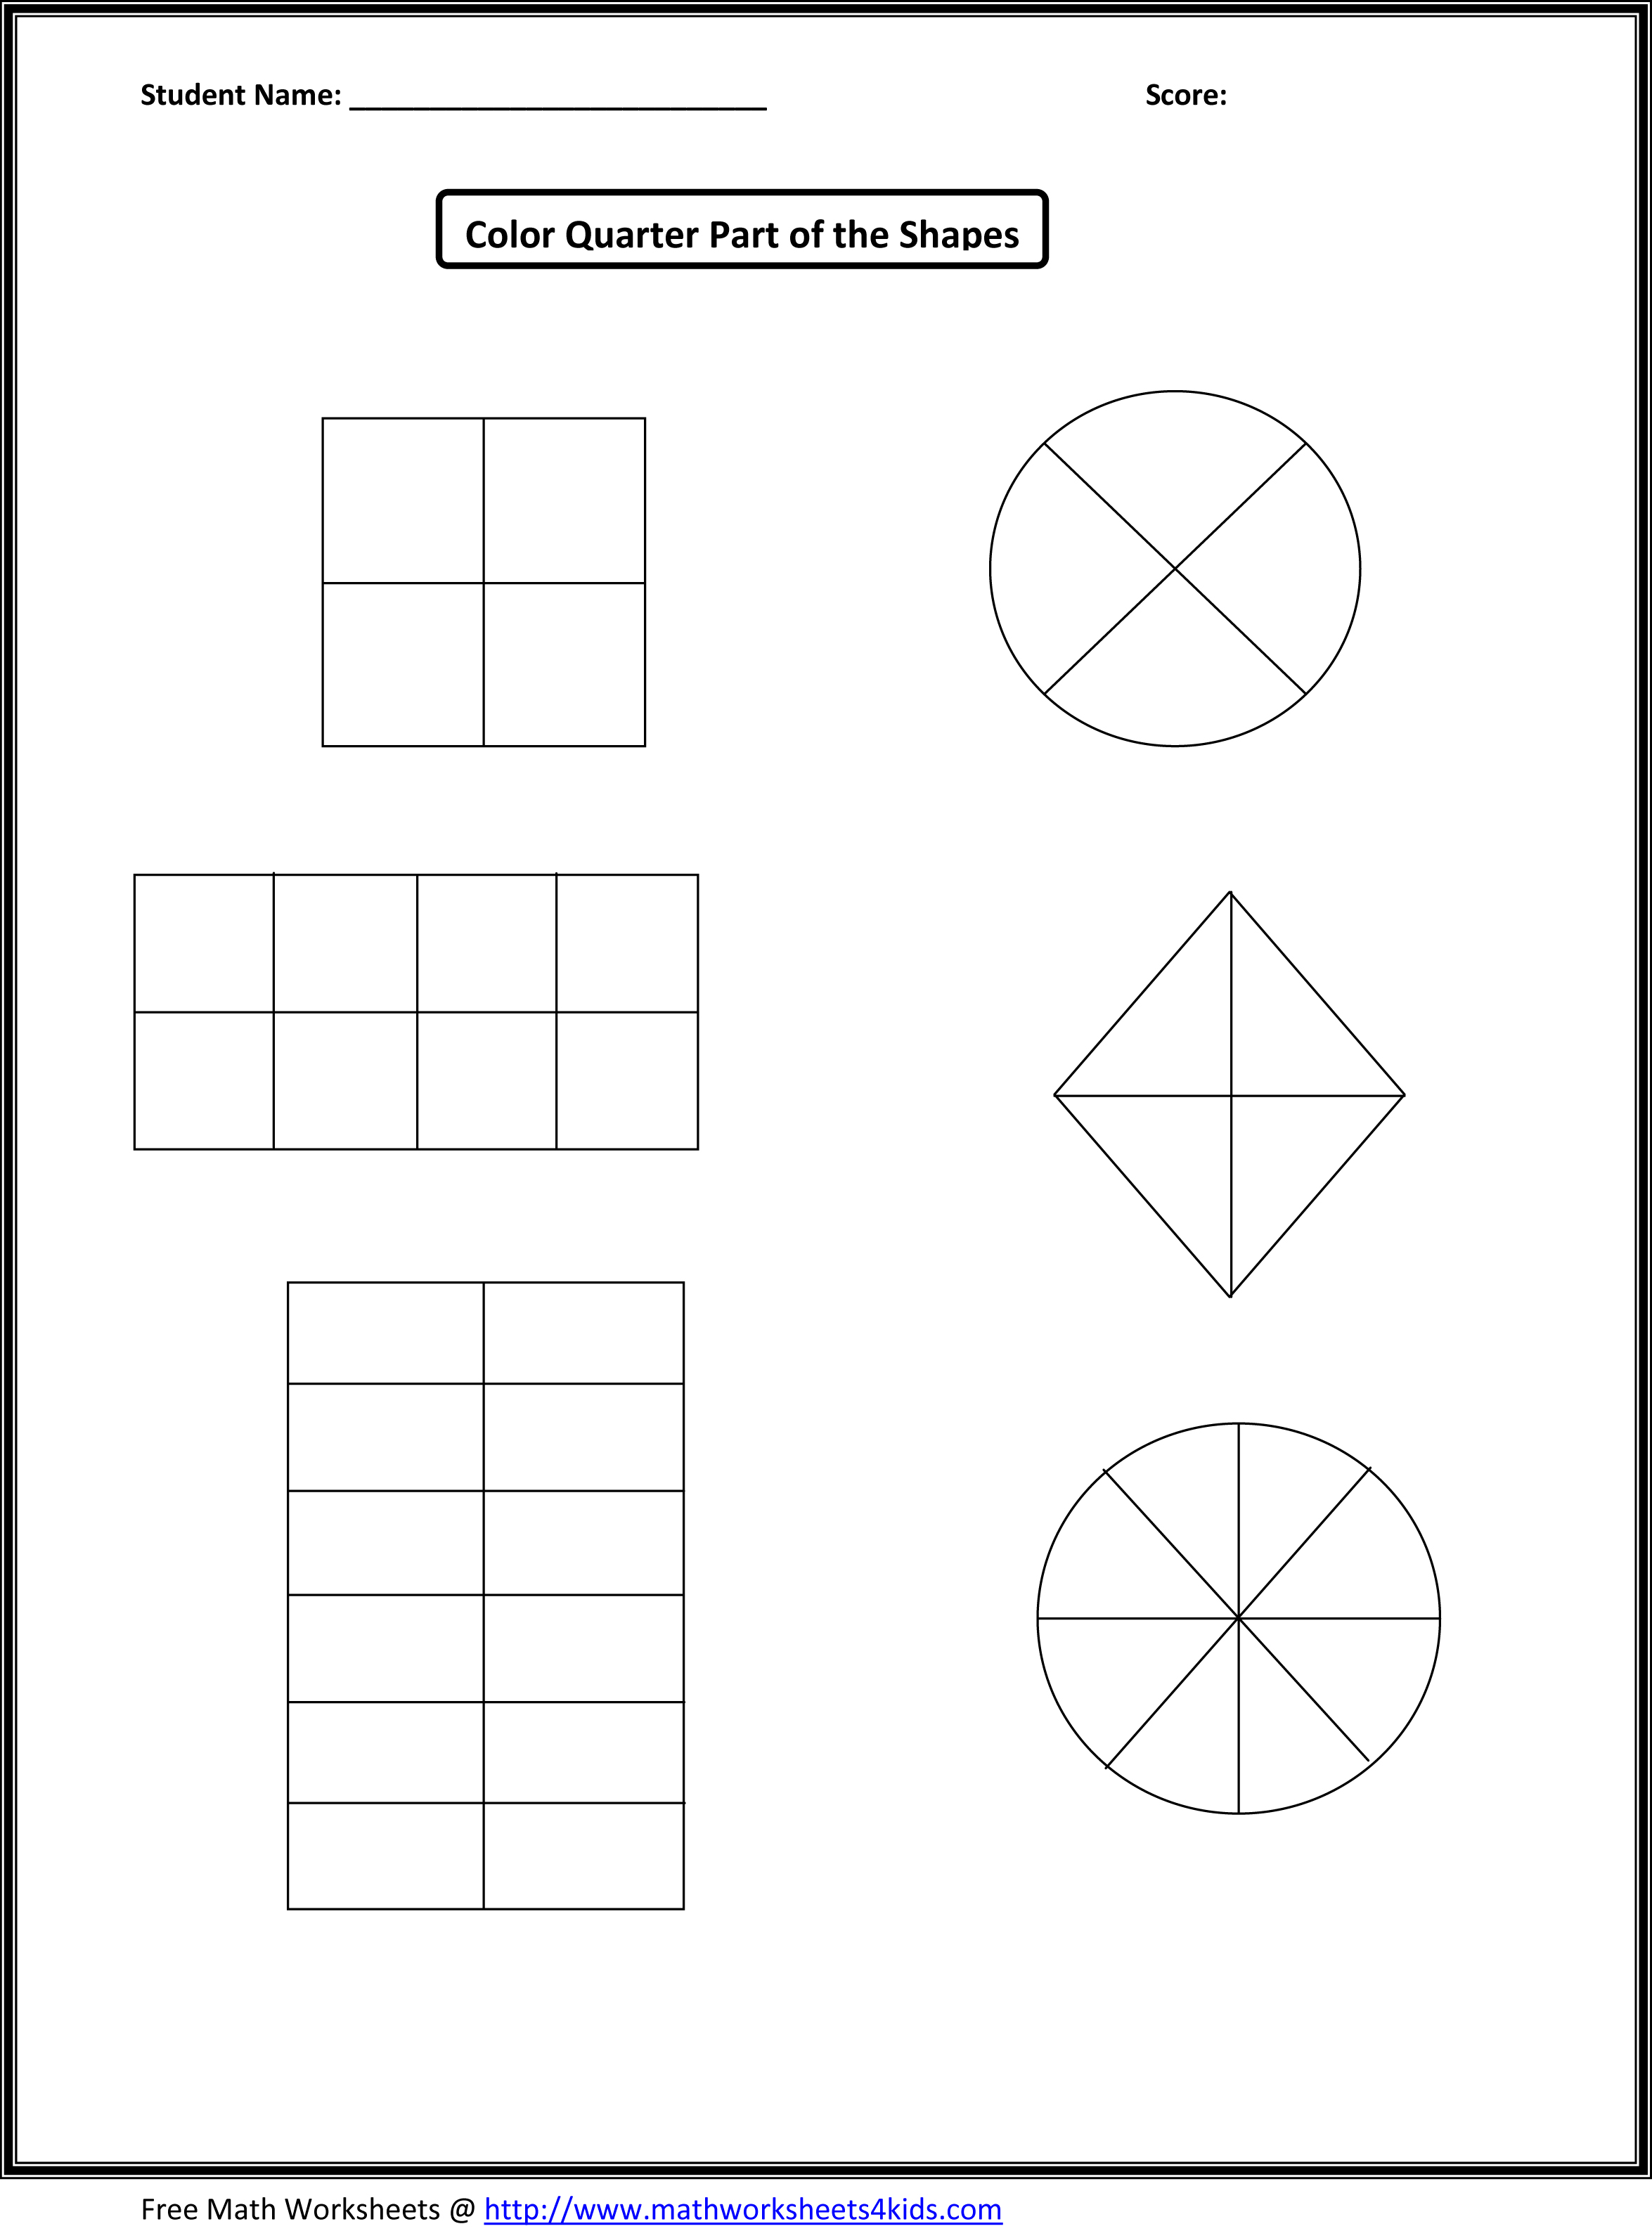 16 Best Images Of Part Whole Addition Worksheet